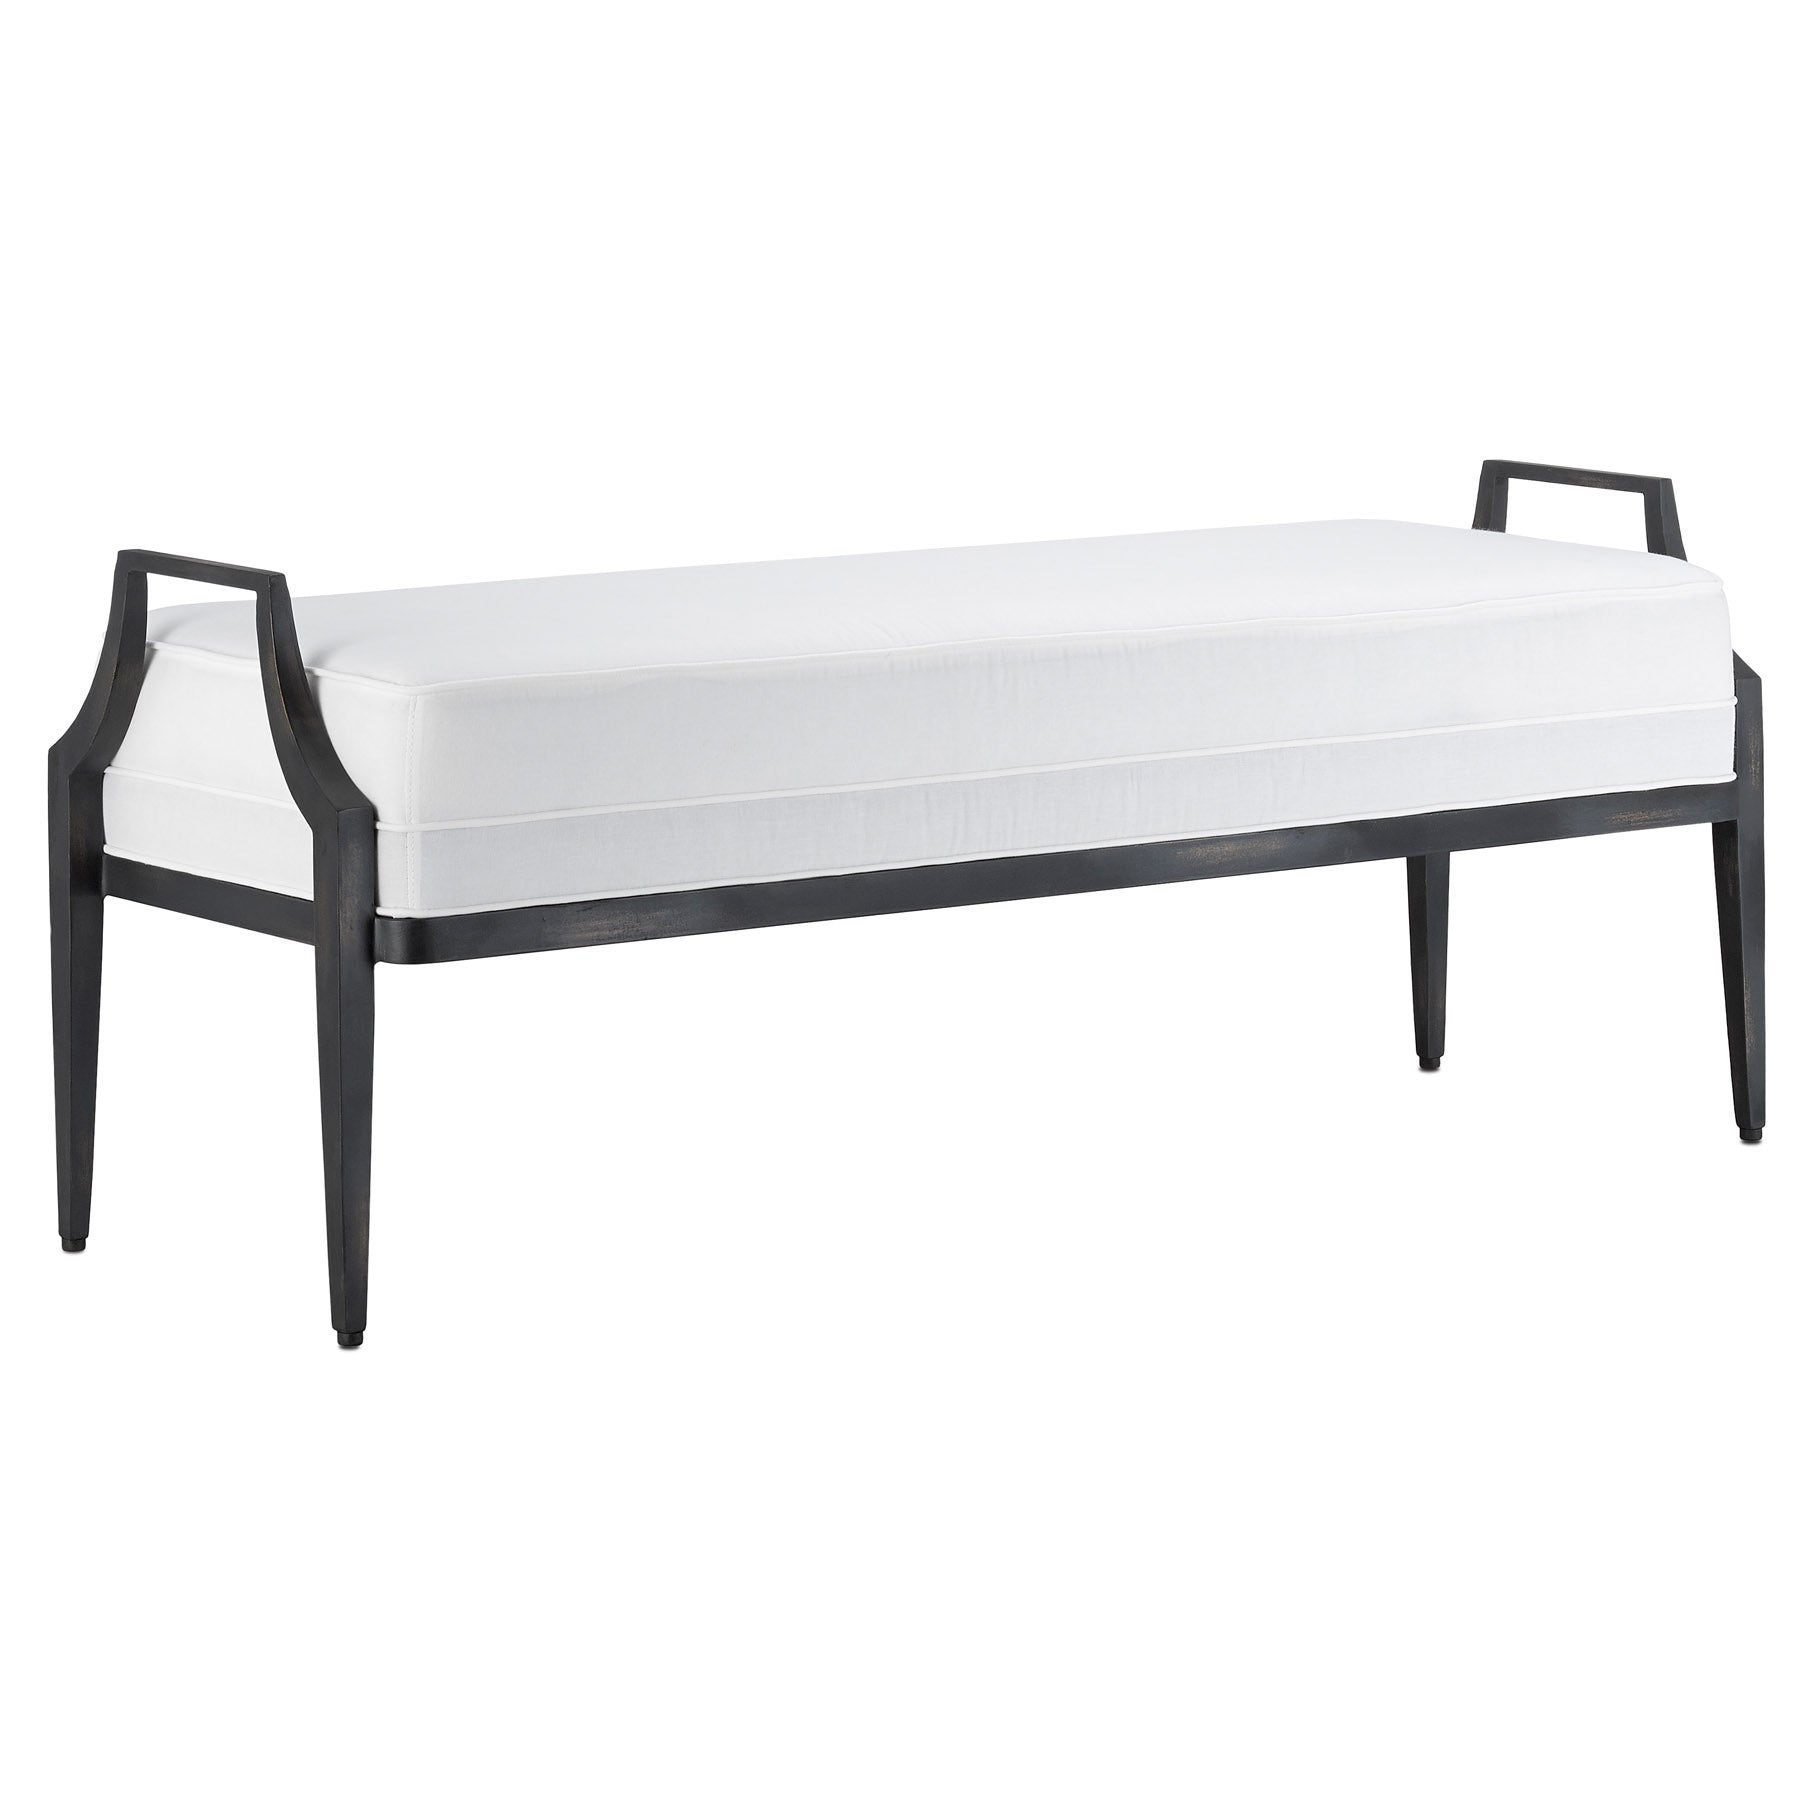 Torrey Muslin Black Bench